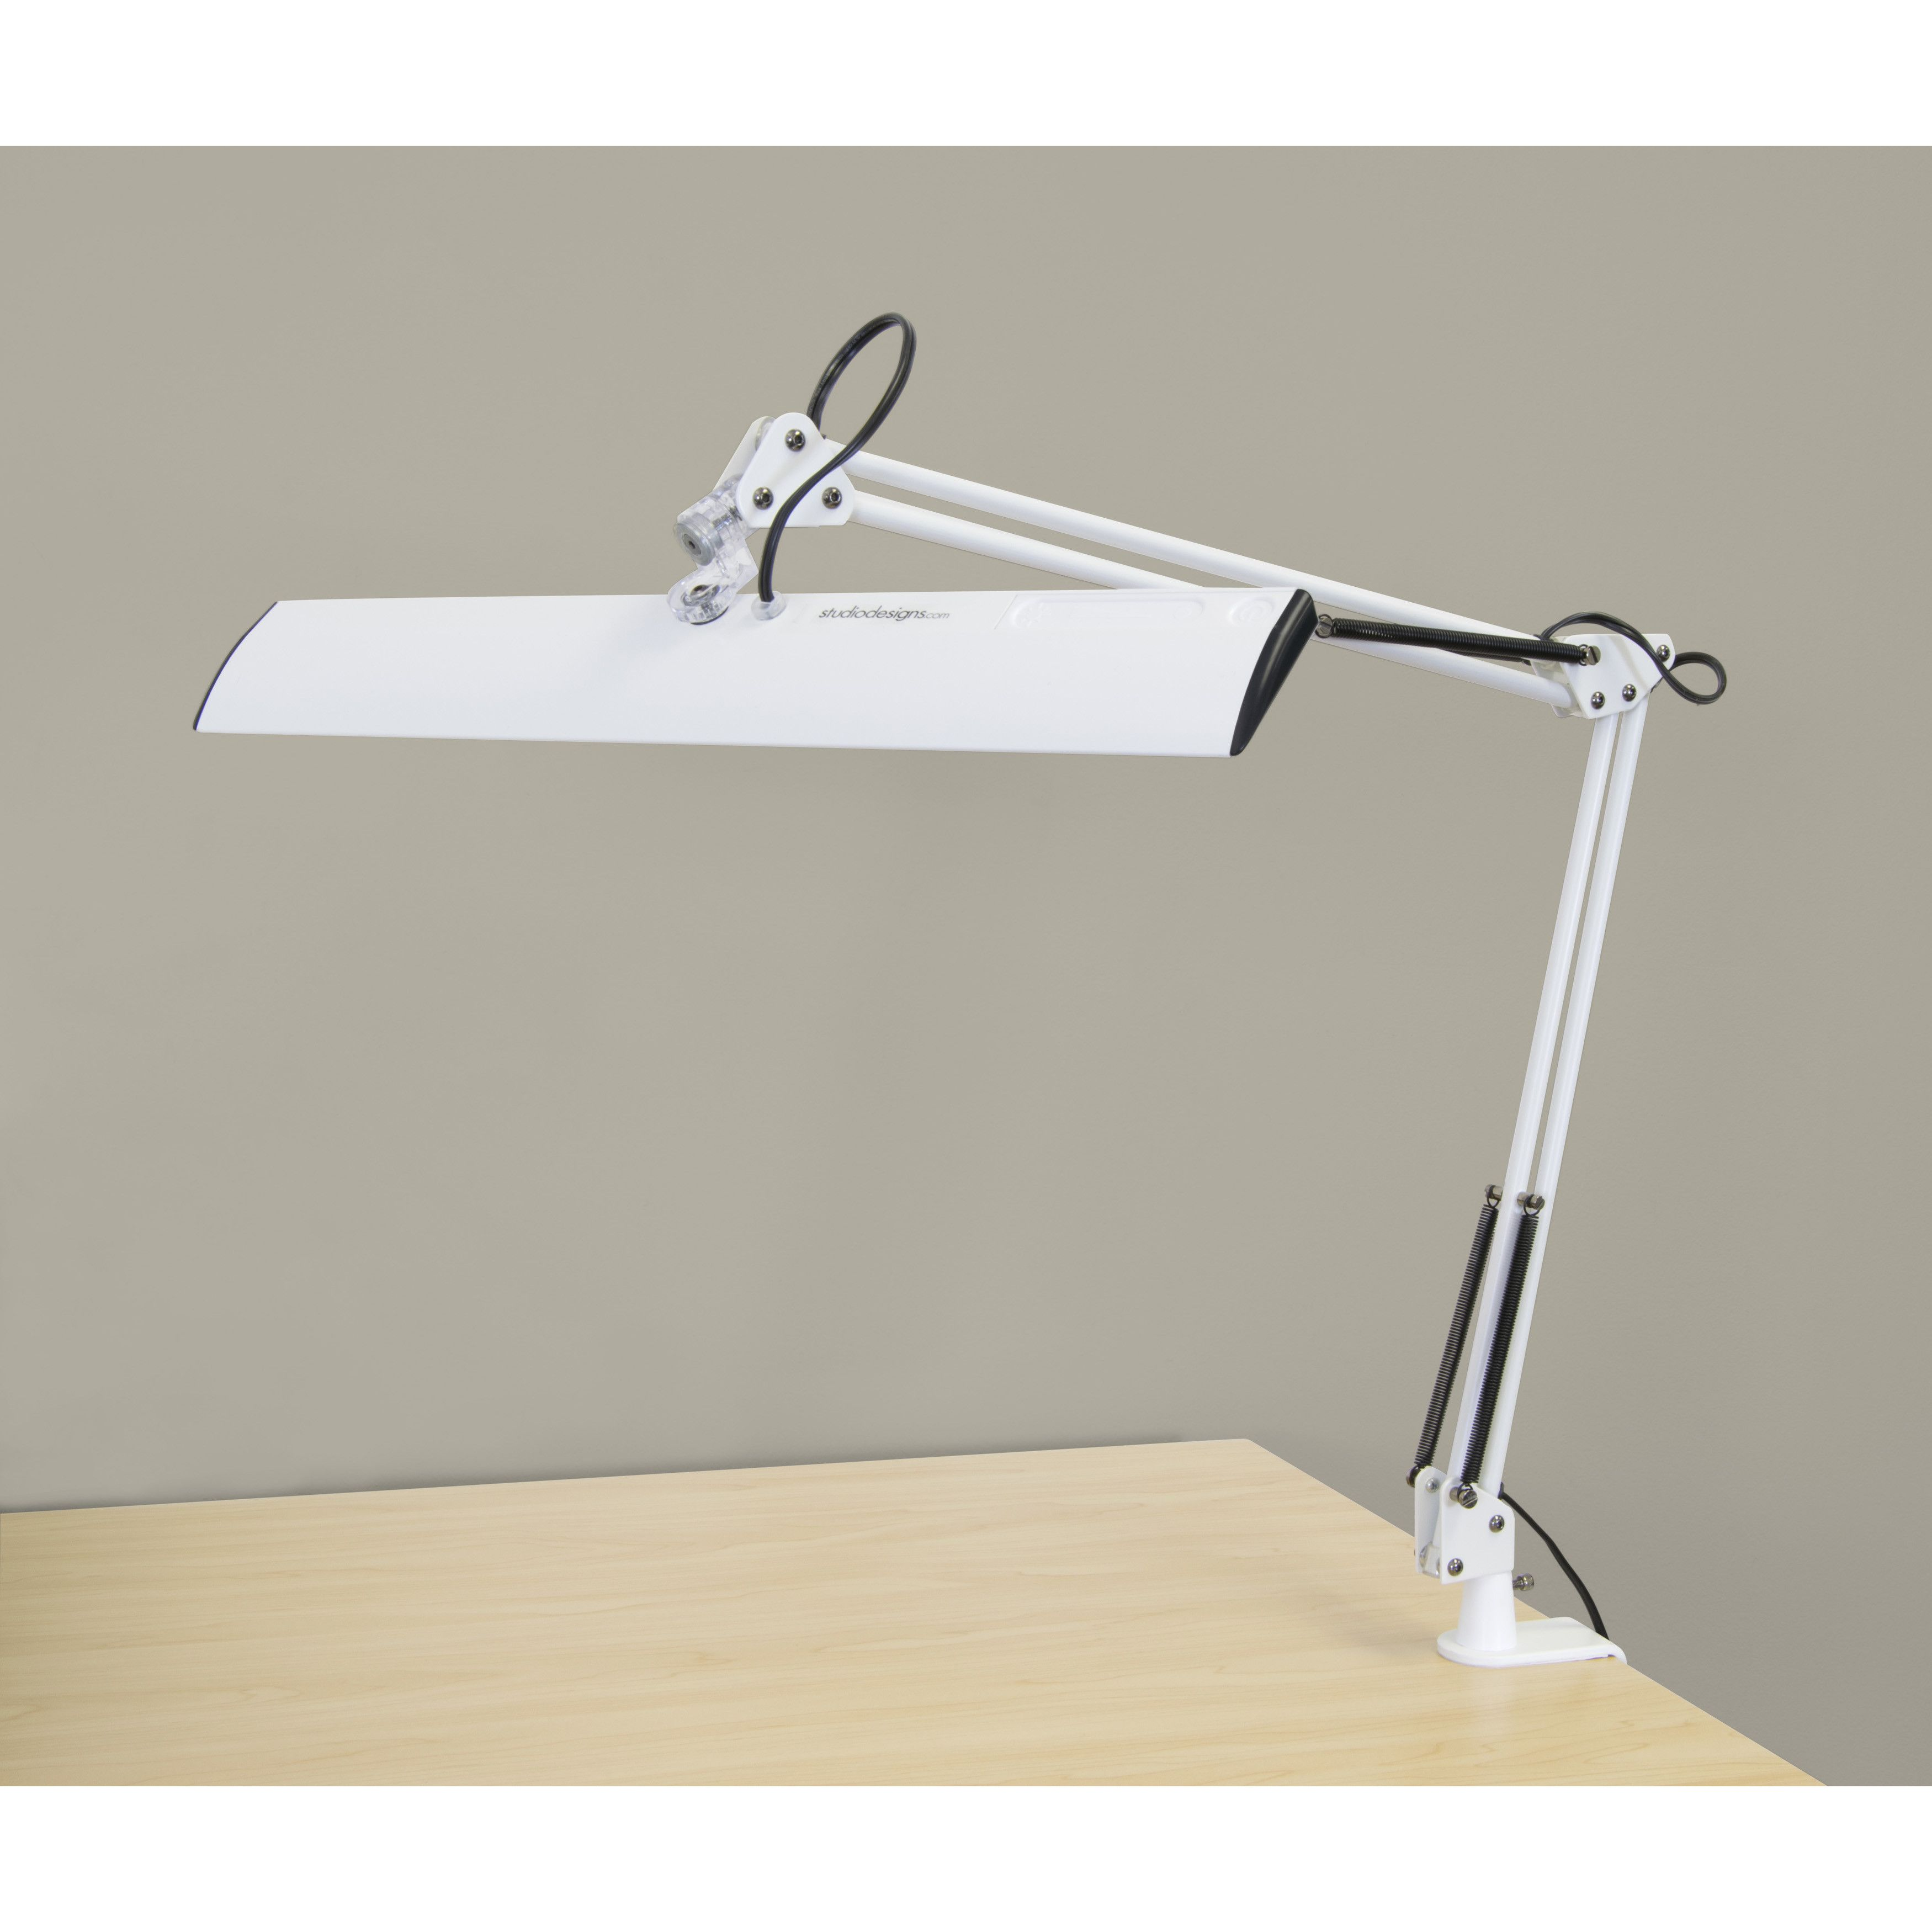 360 Lighting Modern Desk Table Lamp LED Satin Nickel Metal Adjustable Arm Head for Office Craft Hobby